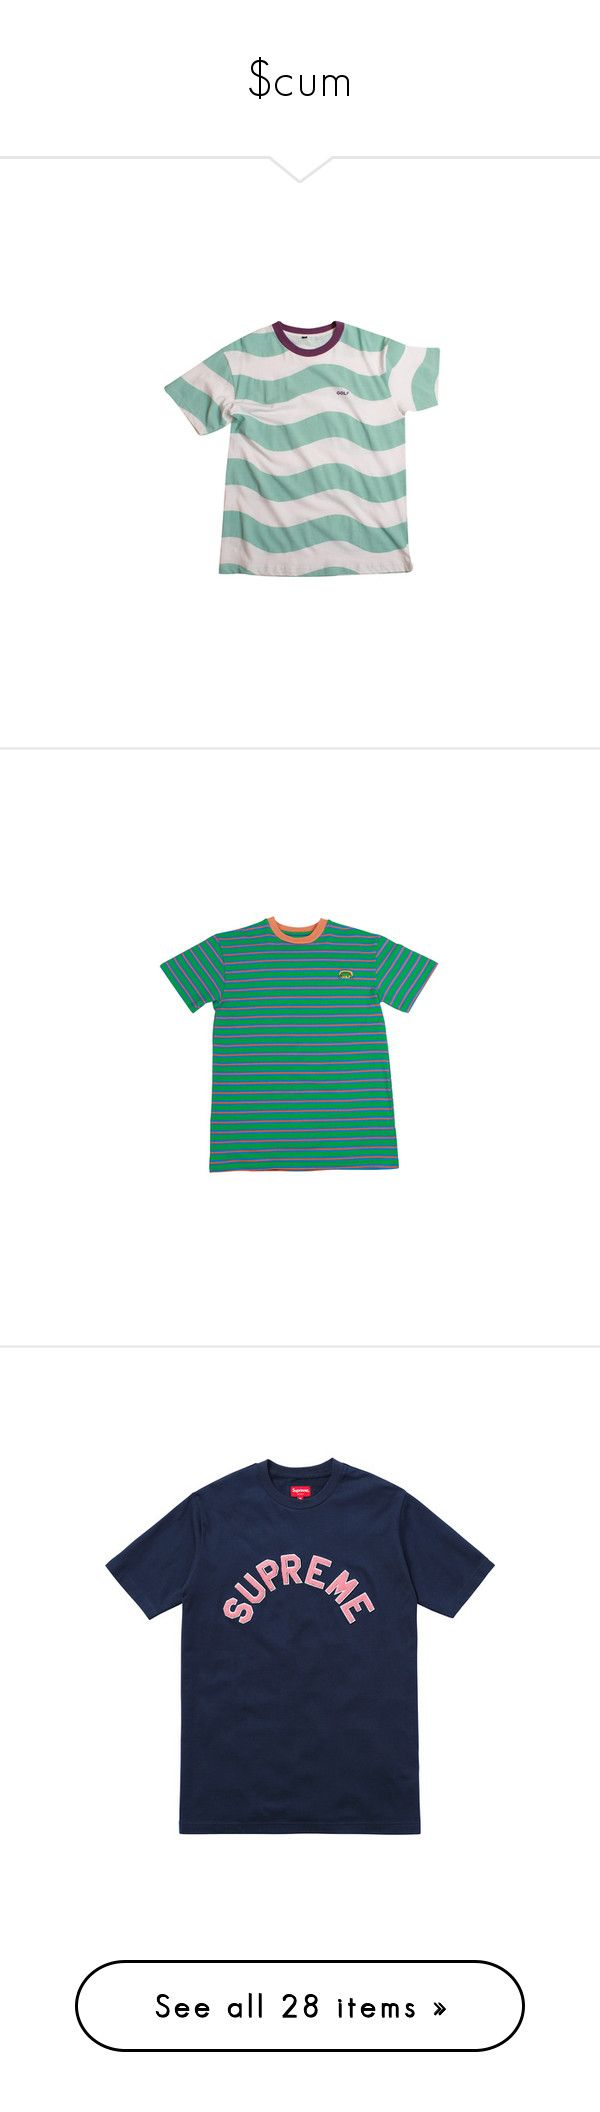 """""""$cum"""" by guaposhorde ❤ liked on Polyvore featuring tops, t-shirts, stripe top, mint green top, mint green t shirt, white striped t shirt, striped tee, shirts, t shirts and green shirt"""